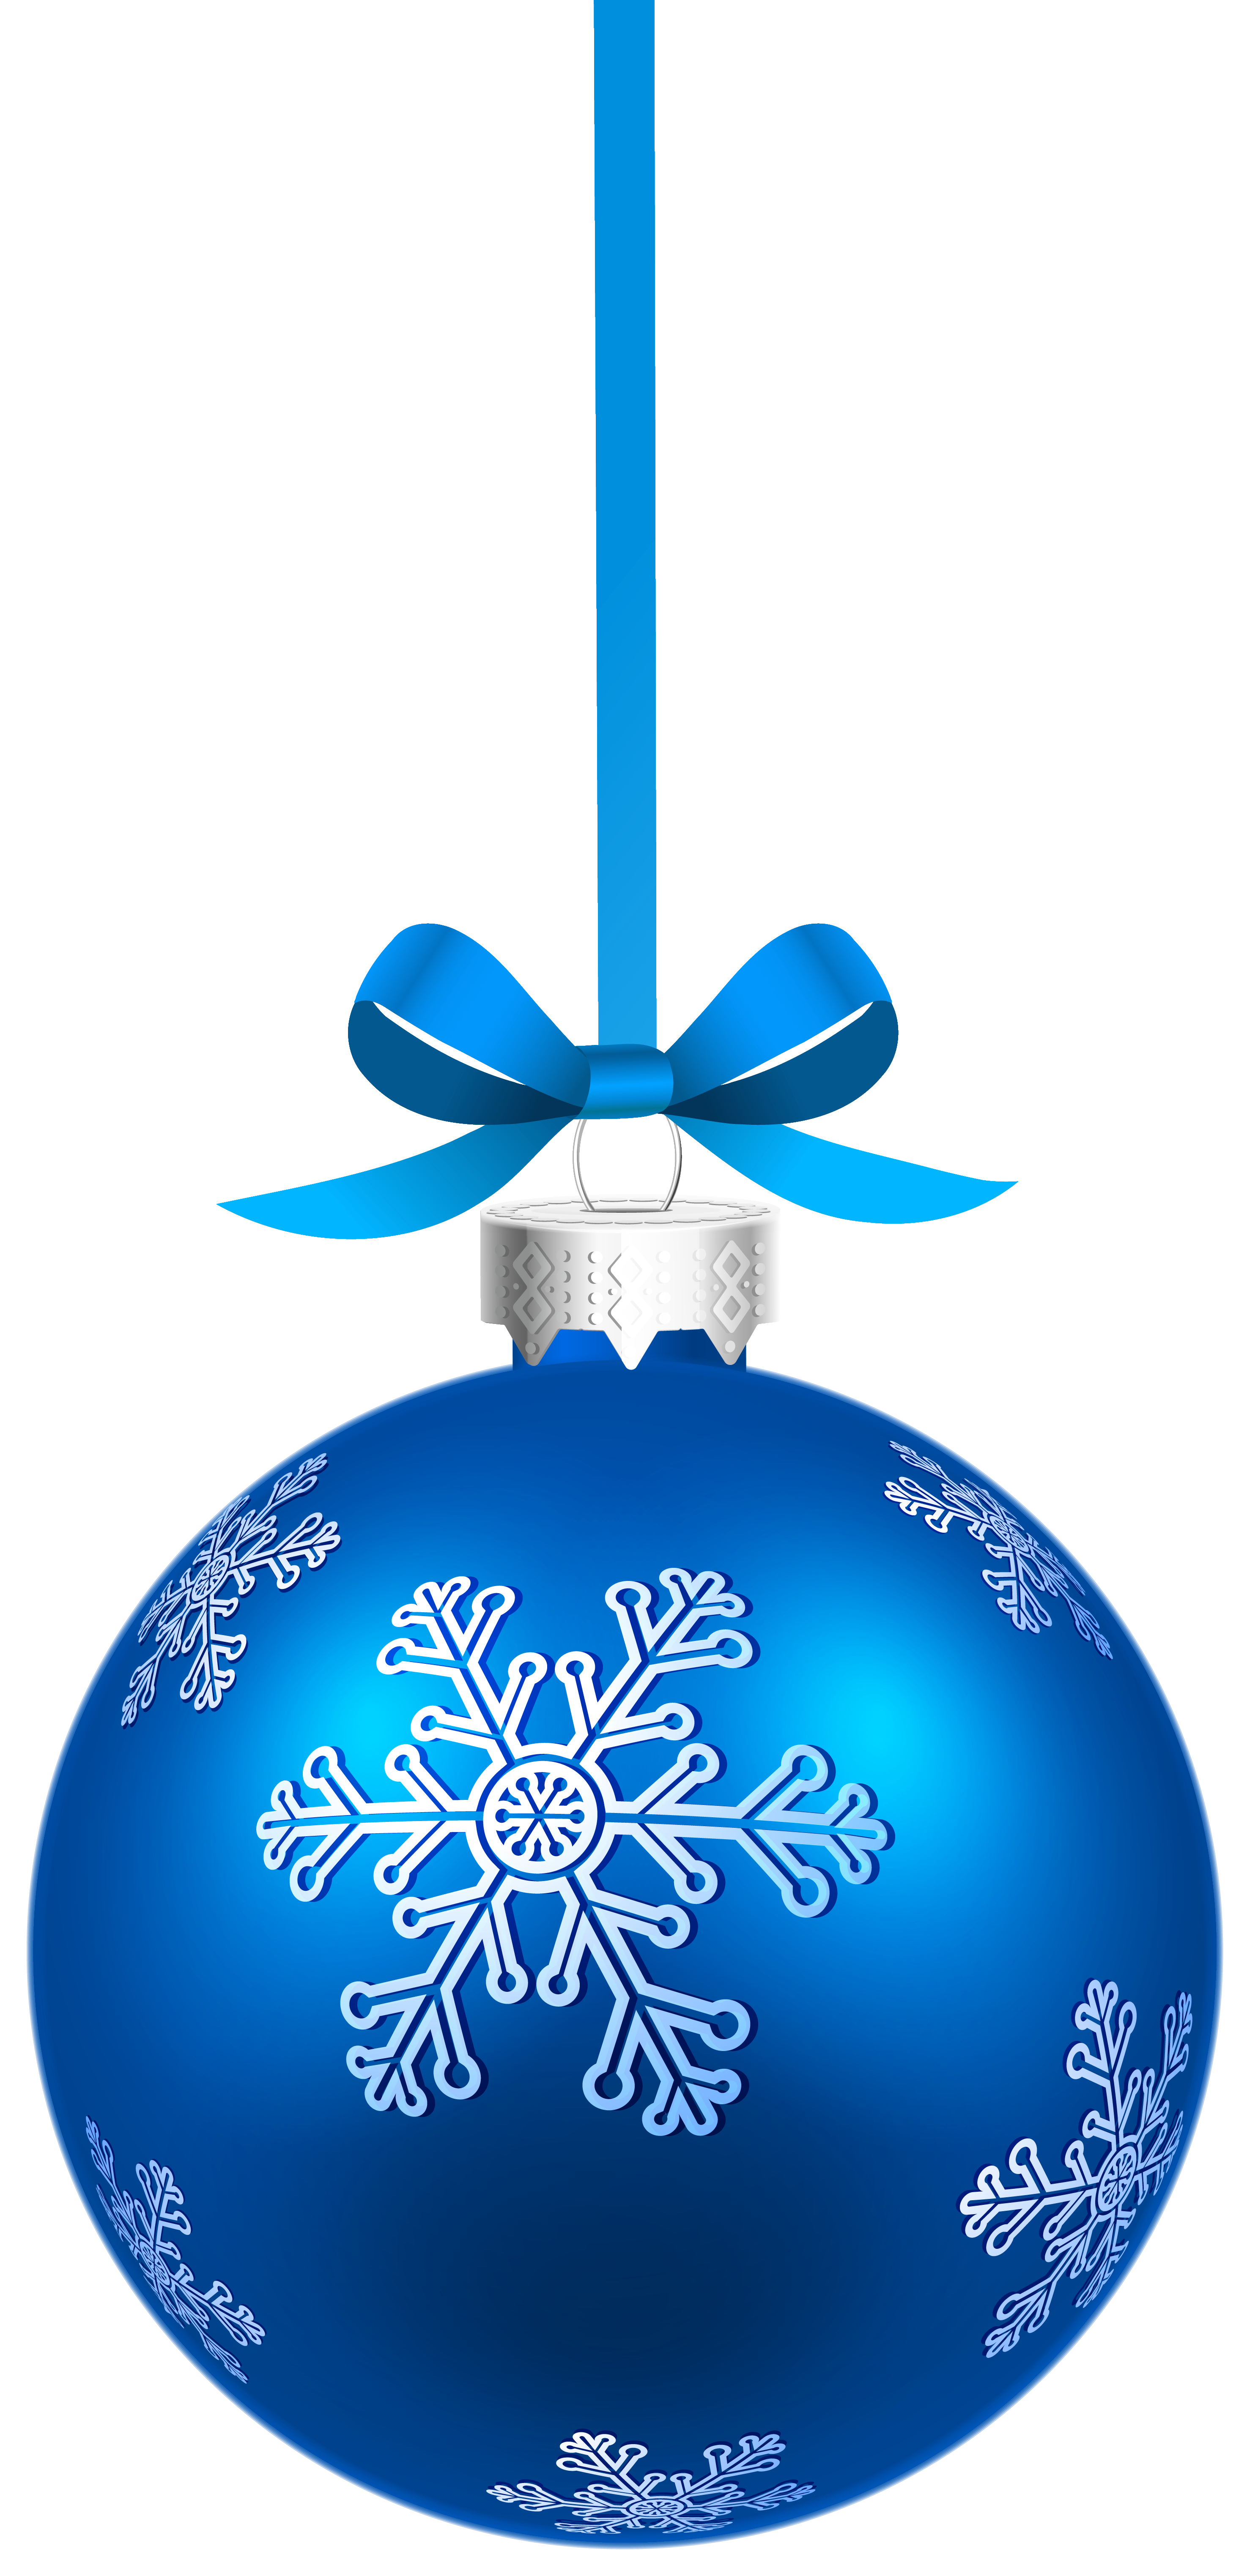 Blue snowflake free banner clipart svg library download Blue Christmas Hanging Ball with Snowflakes PNG Clipart Image ... svg library download